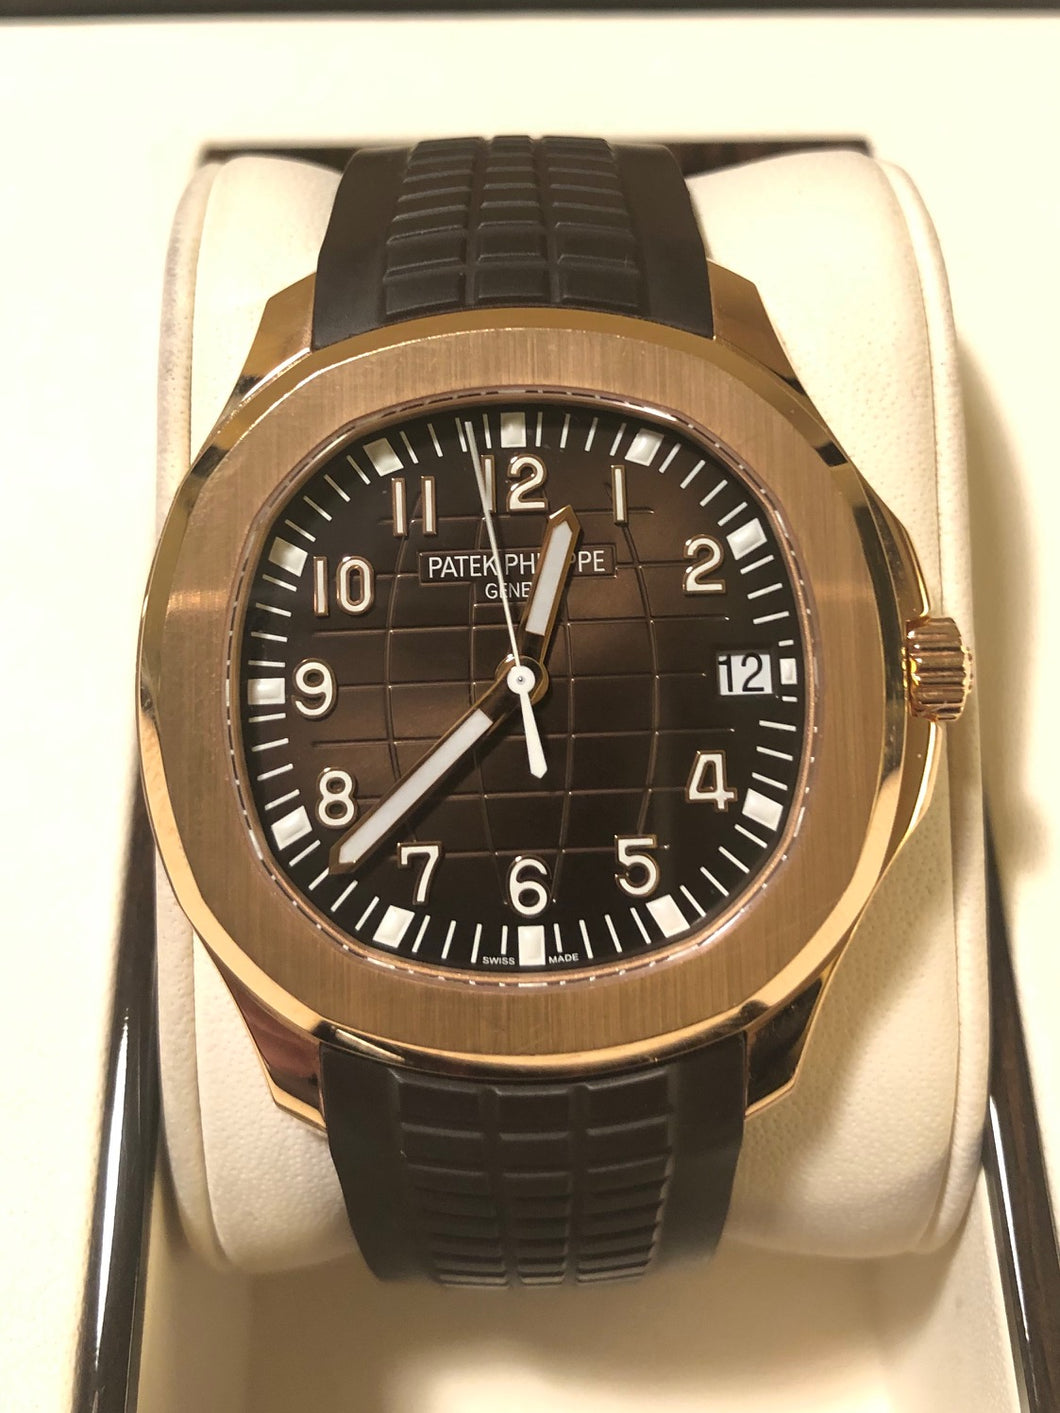 AQUANAUT PINK GOLD 5167R-001